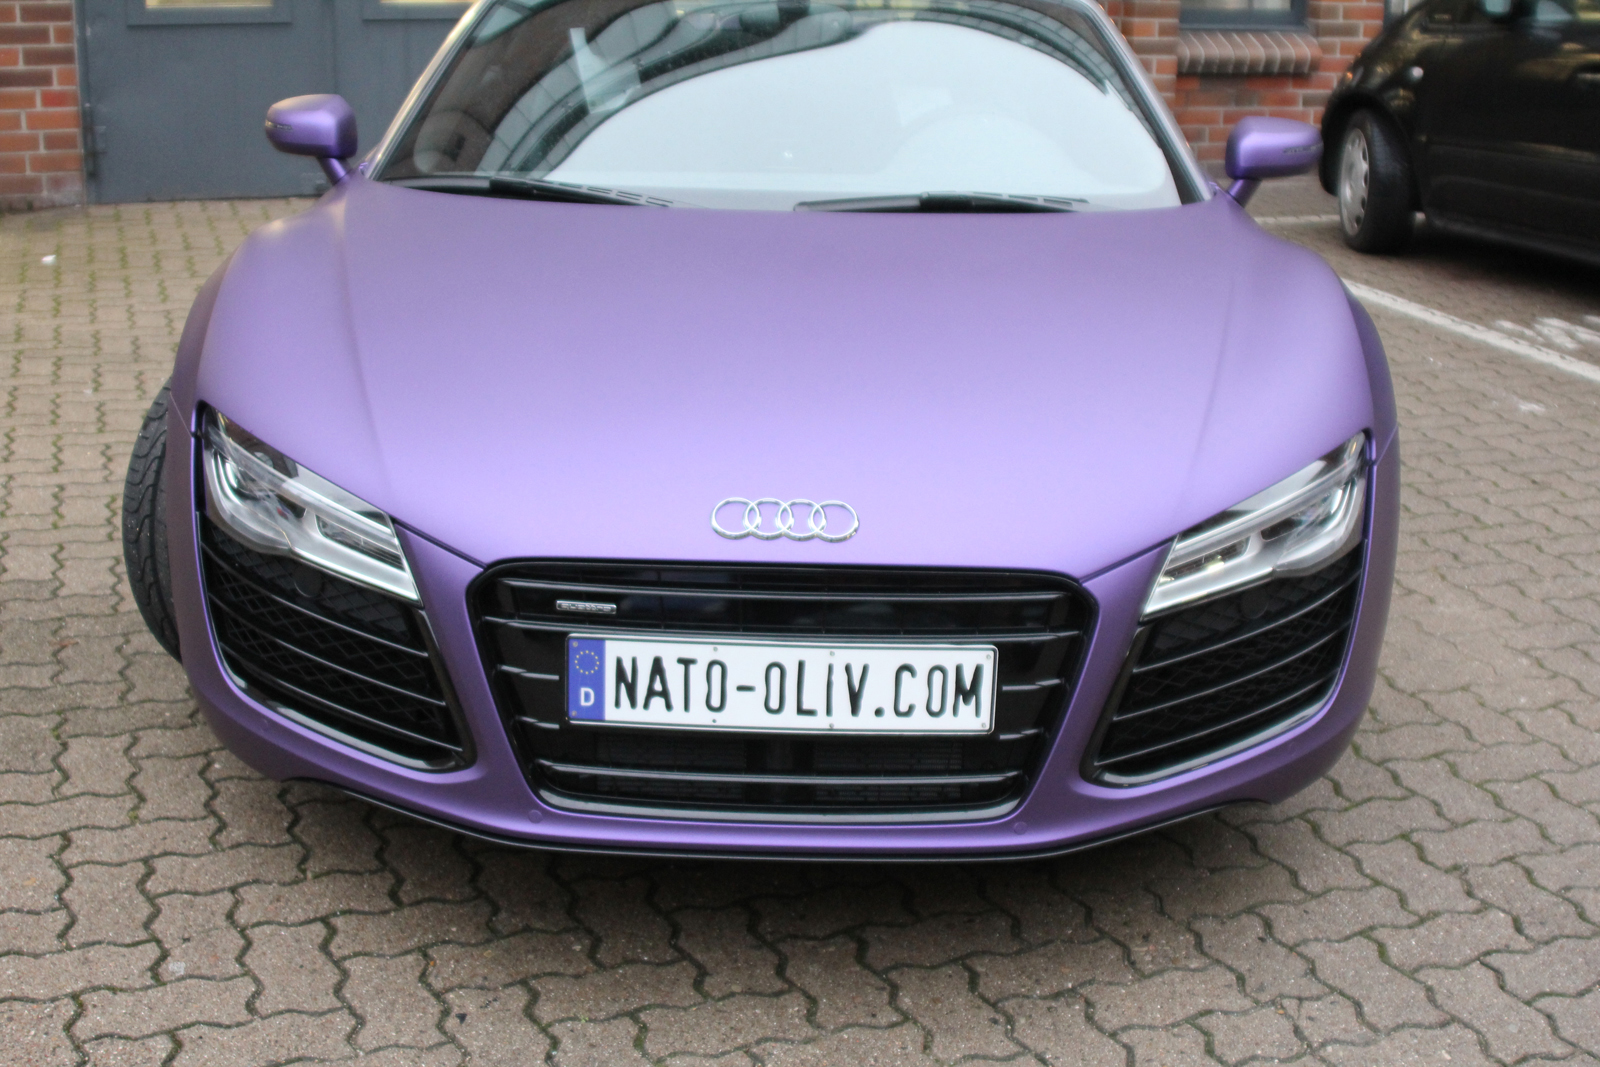 AUDI_R8_PURPLE_MATT_METALLIC_CAR-WRAPPING_11